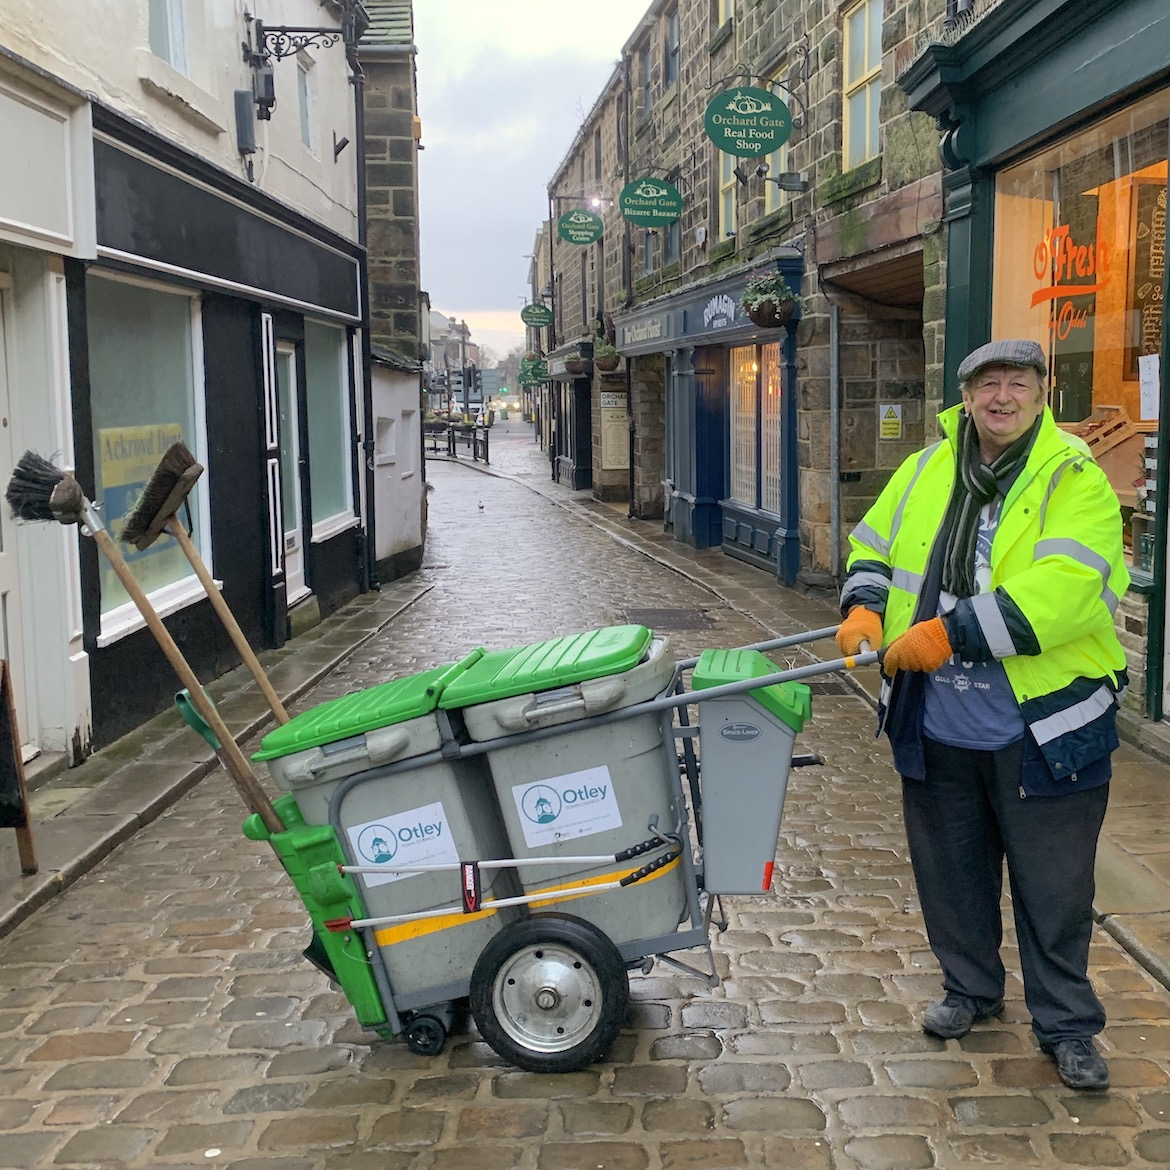 Keeping Otley Clean